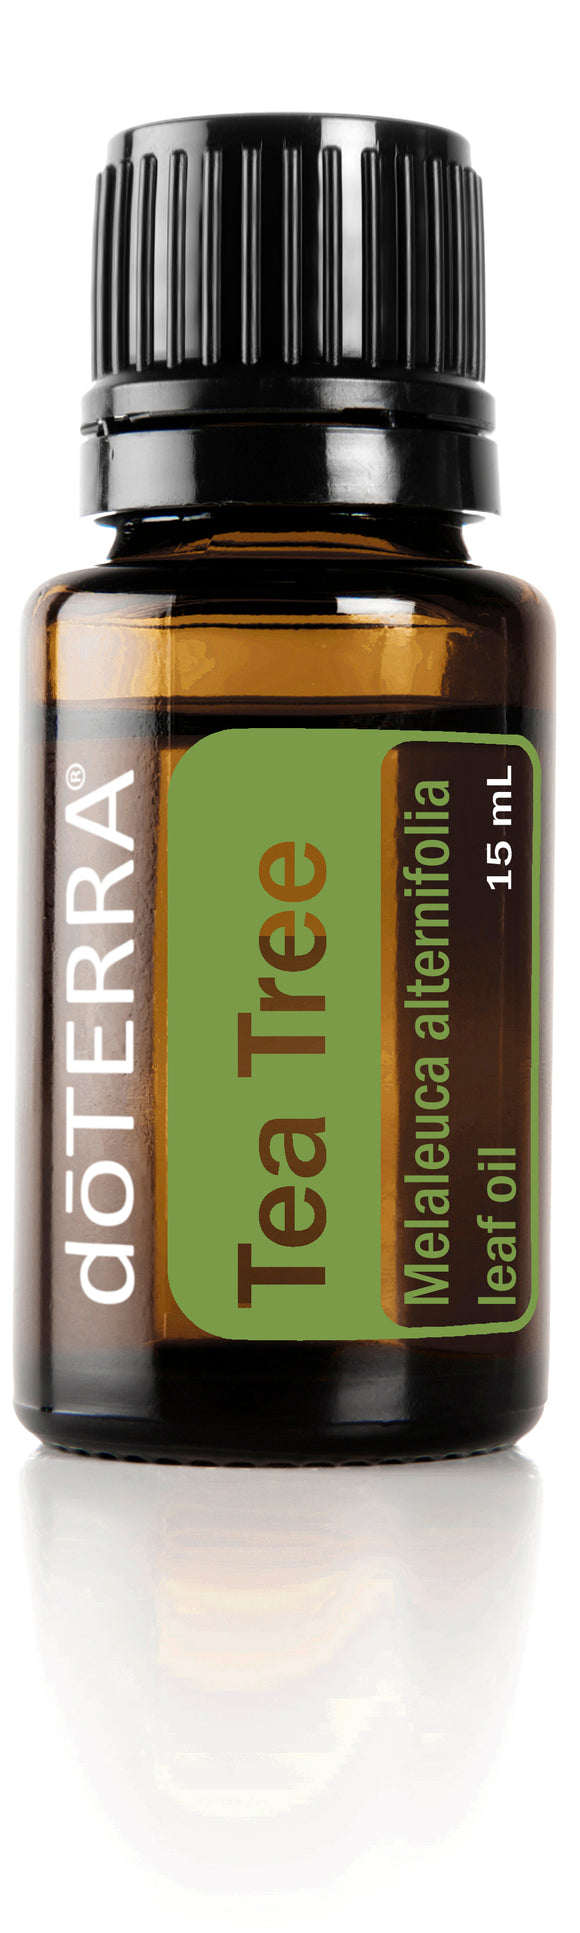 dōTERRA Tea Tree Single Oil 15ml - CUSTOM AND ESSENTIALS